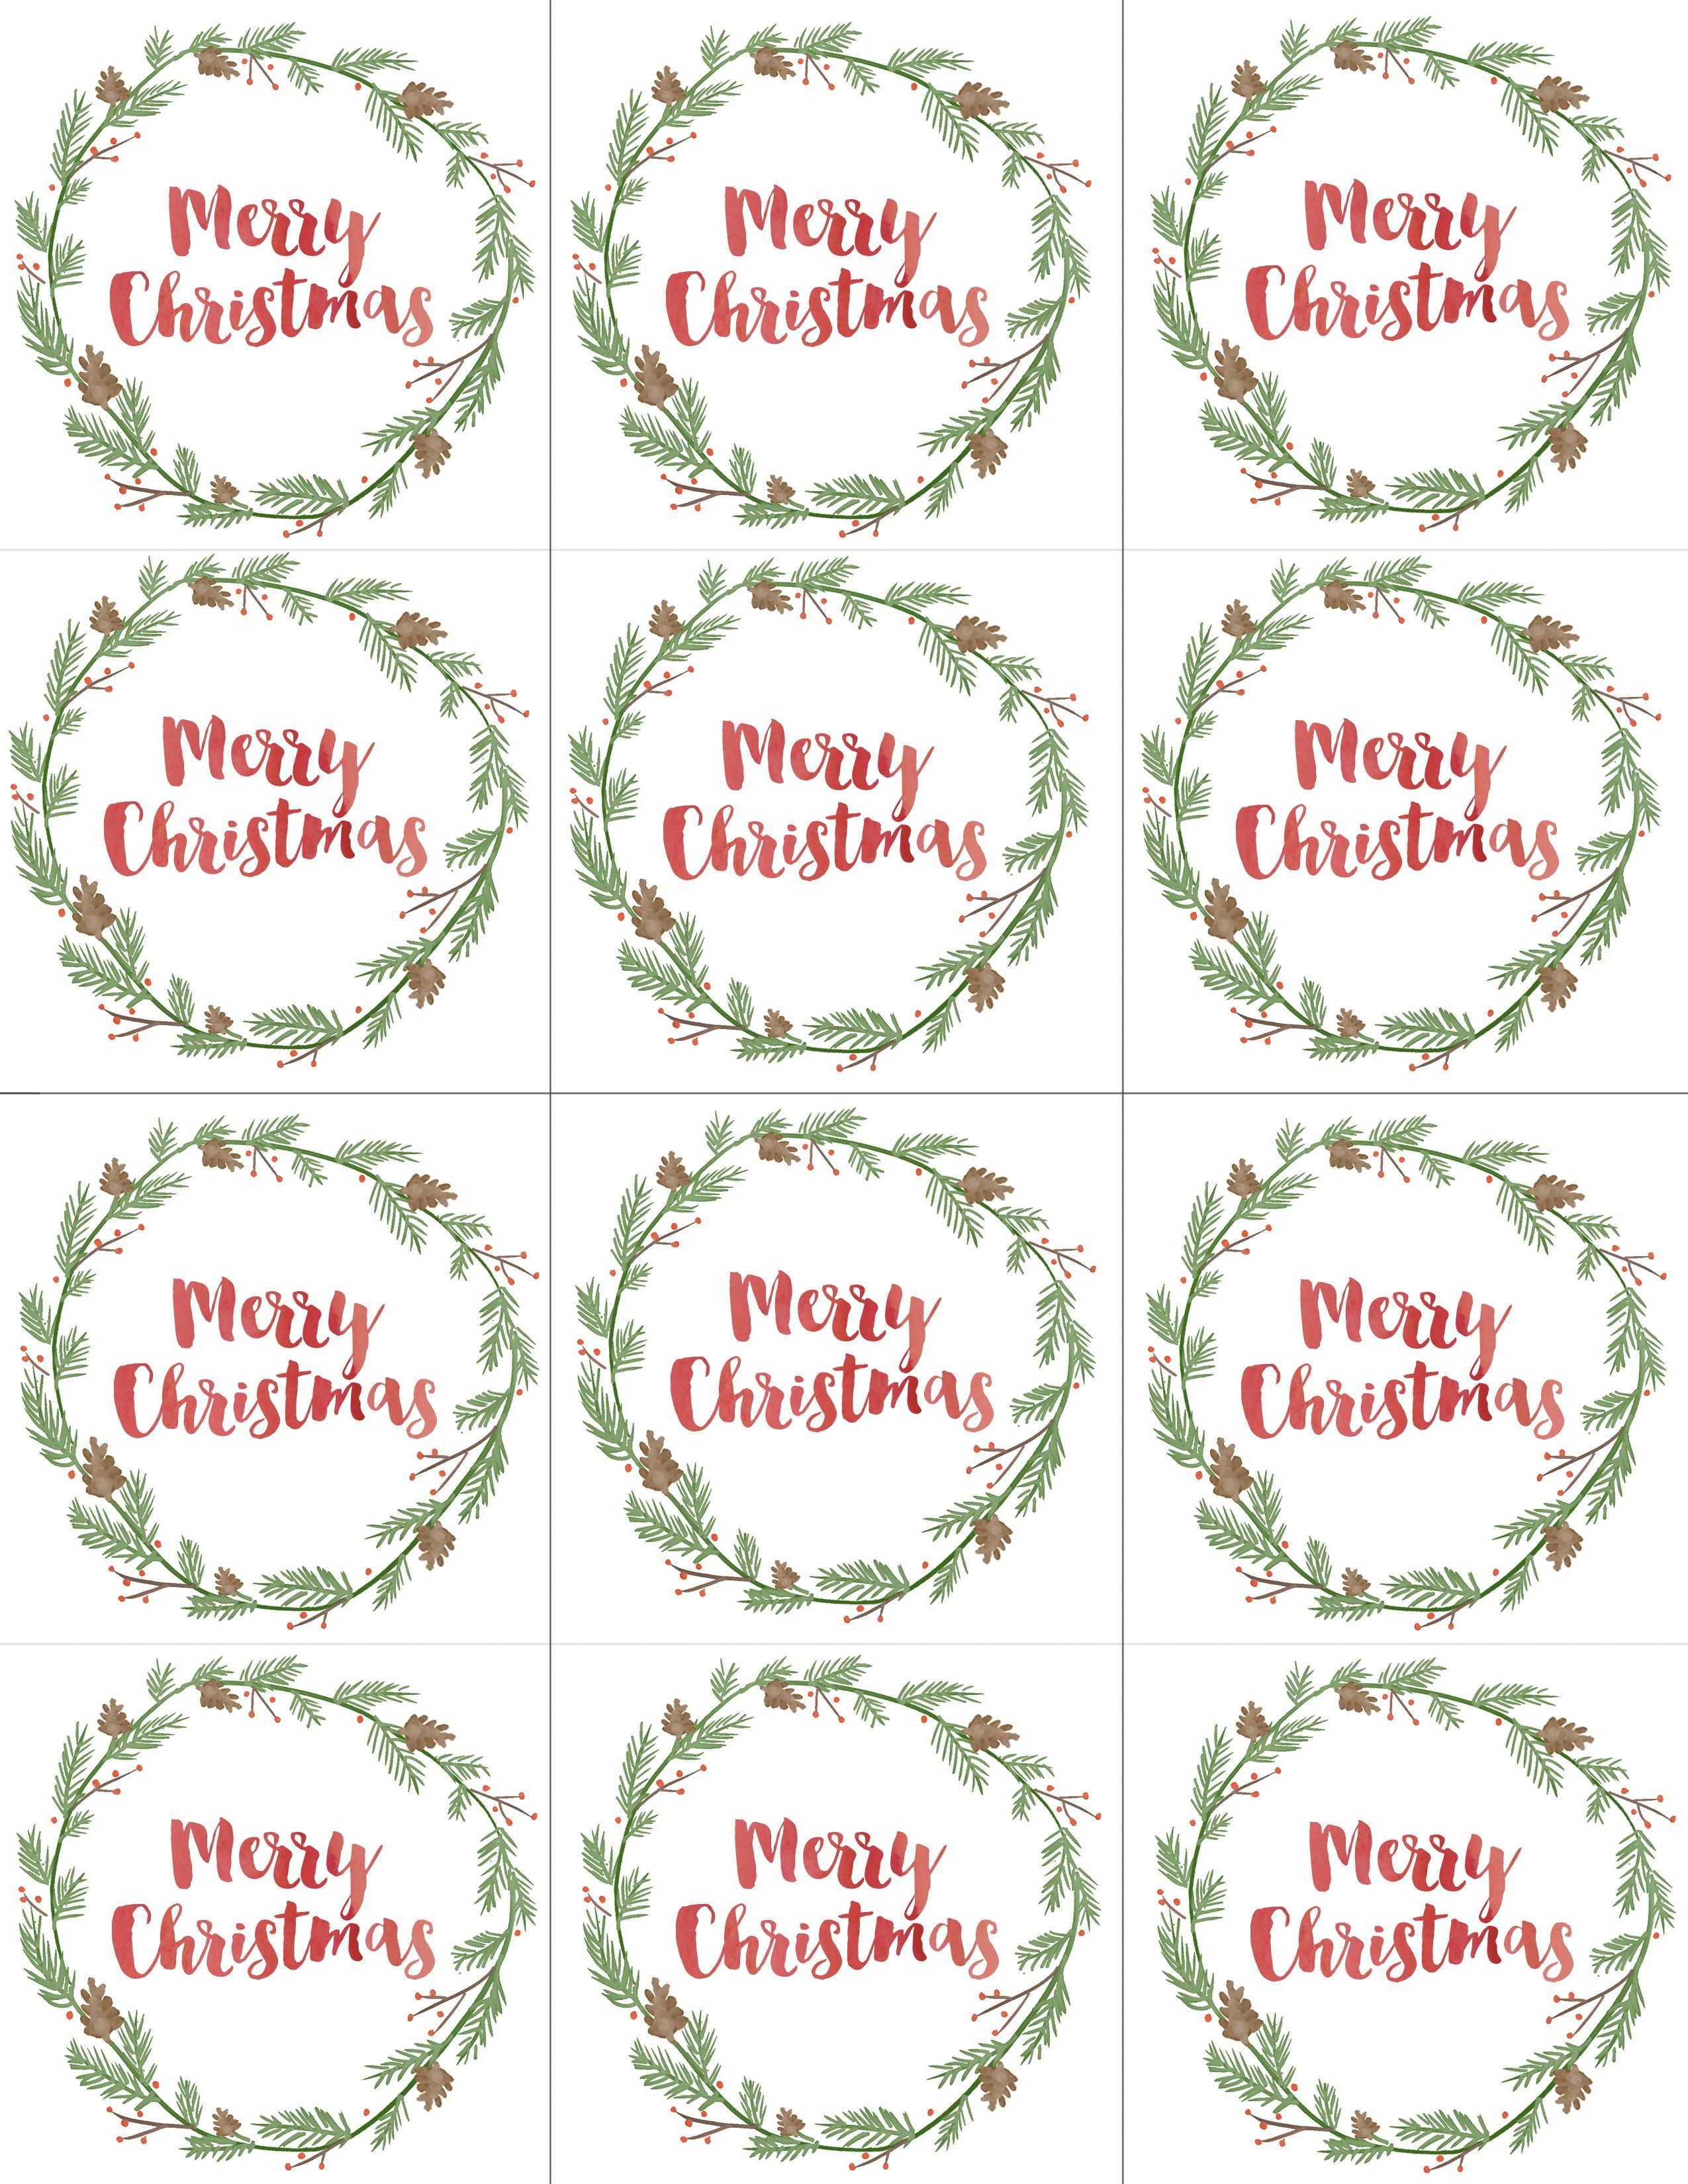 Hand Painted Gift Tags Free Printable   Christmas   Christmas Gift - Diy Christmas Gift Tags Free Printable